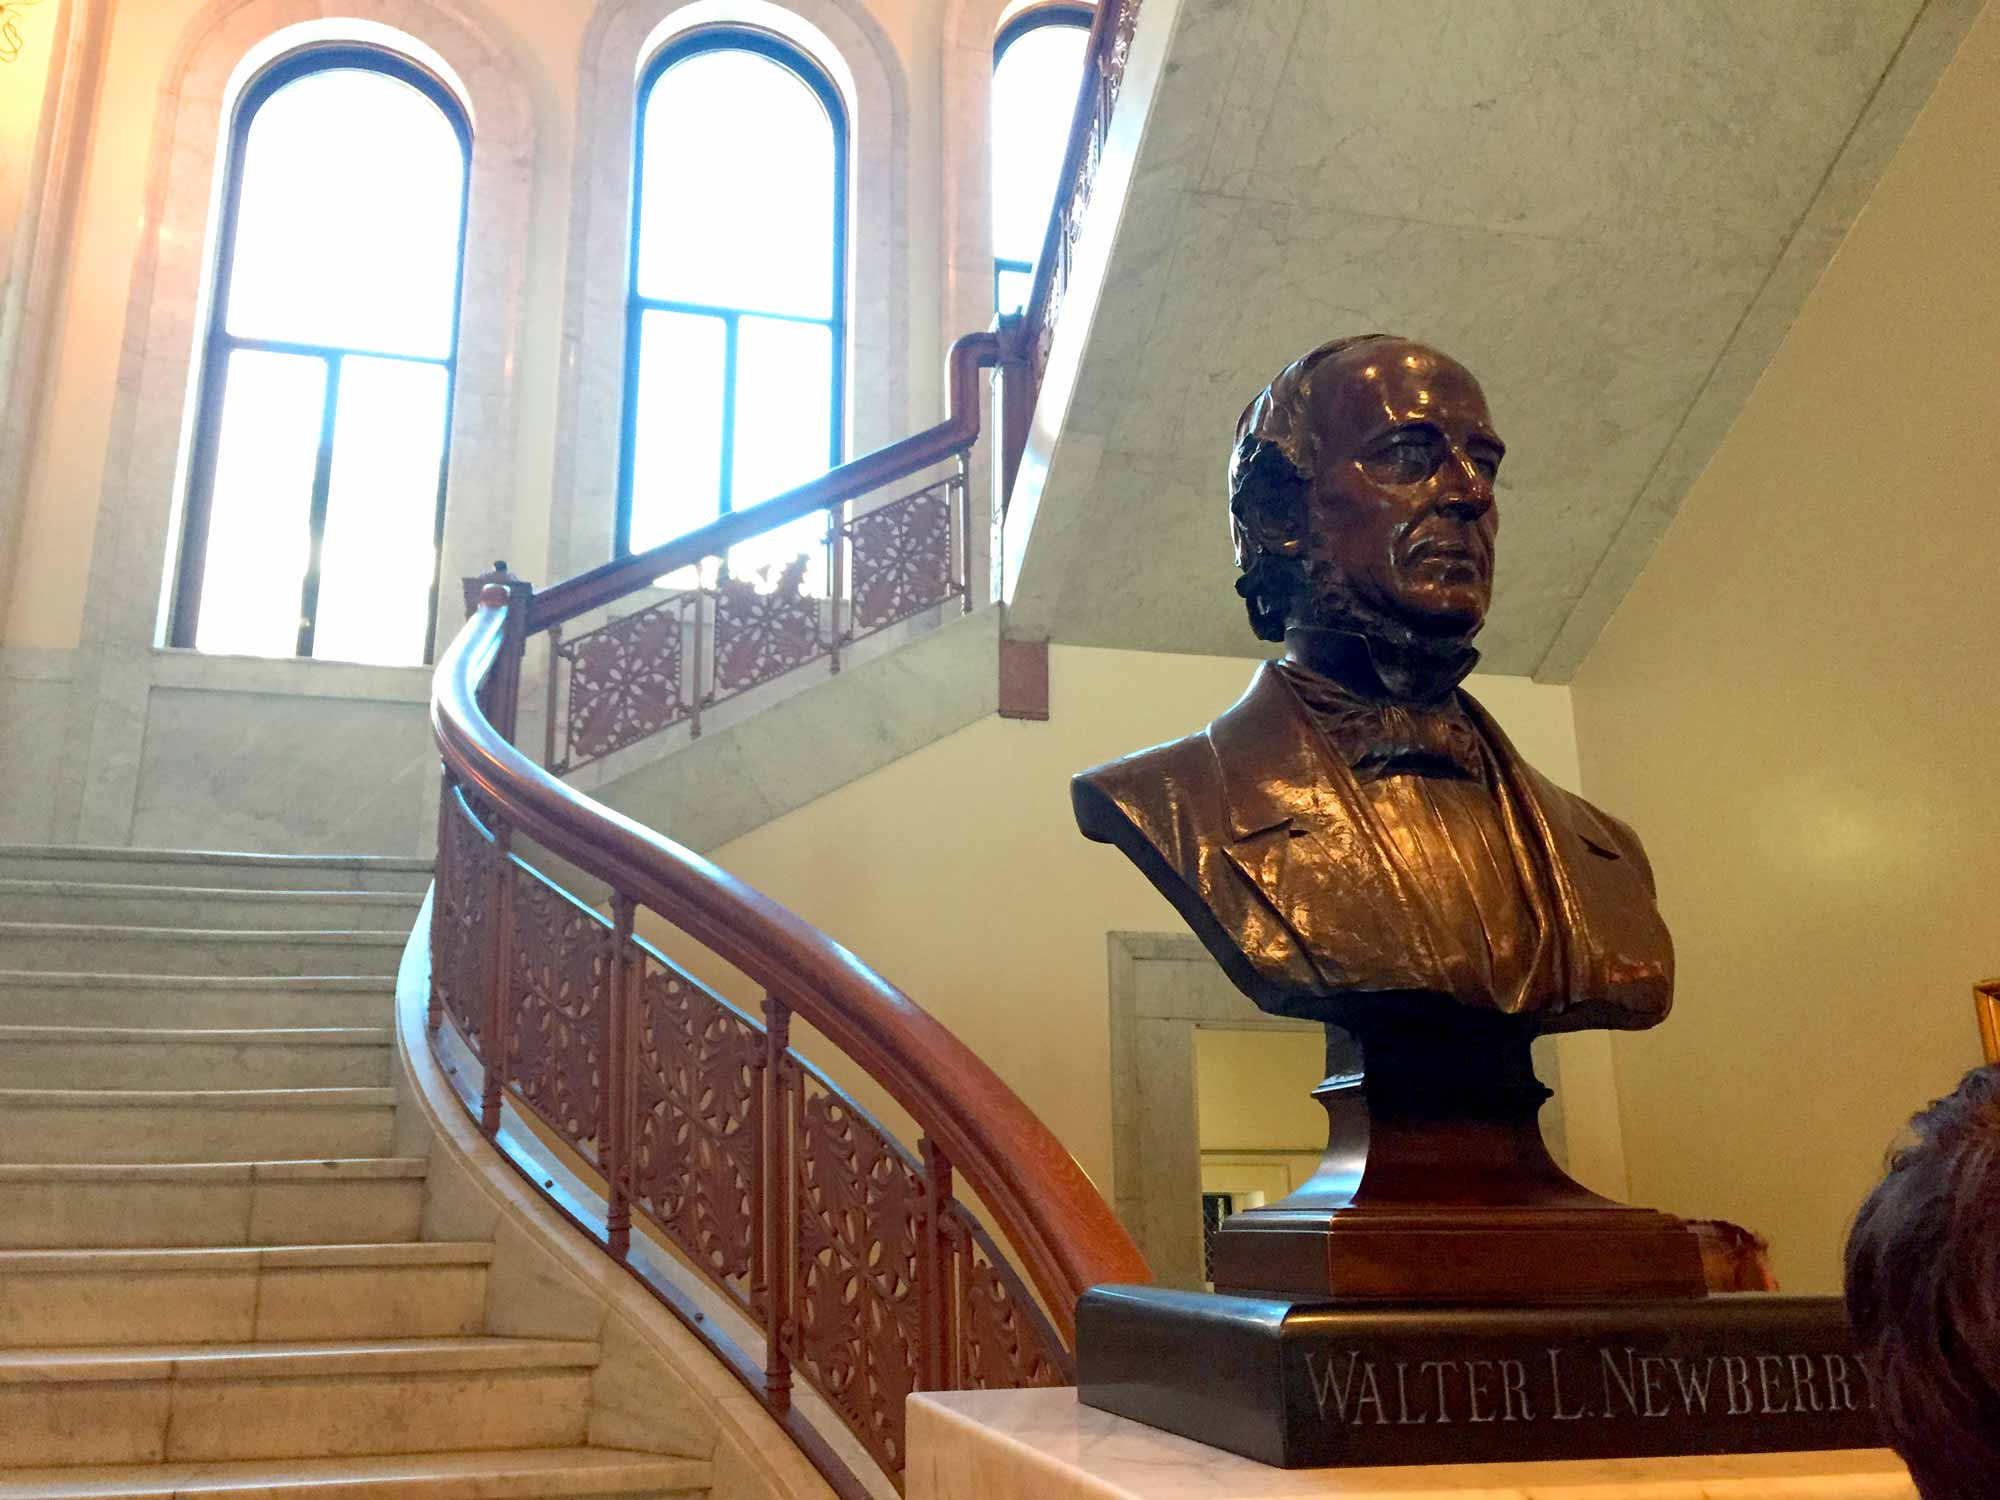 A photo of the Walter Loomis Newberry bust.